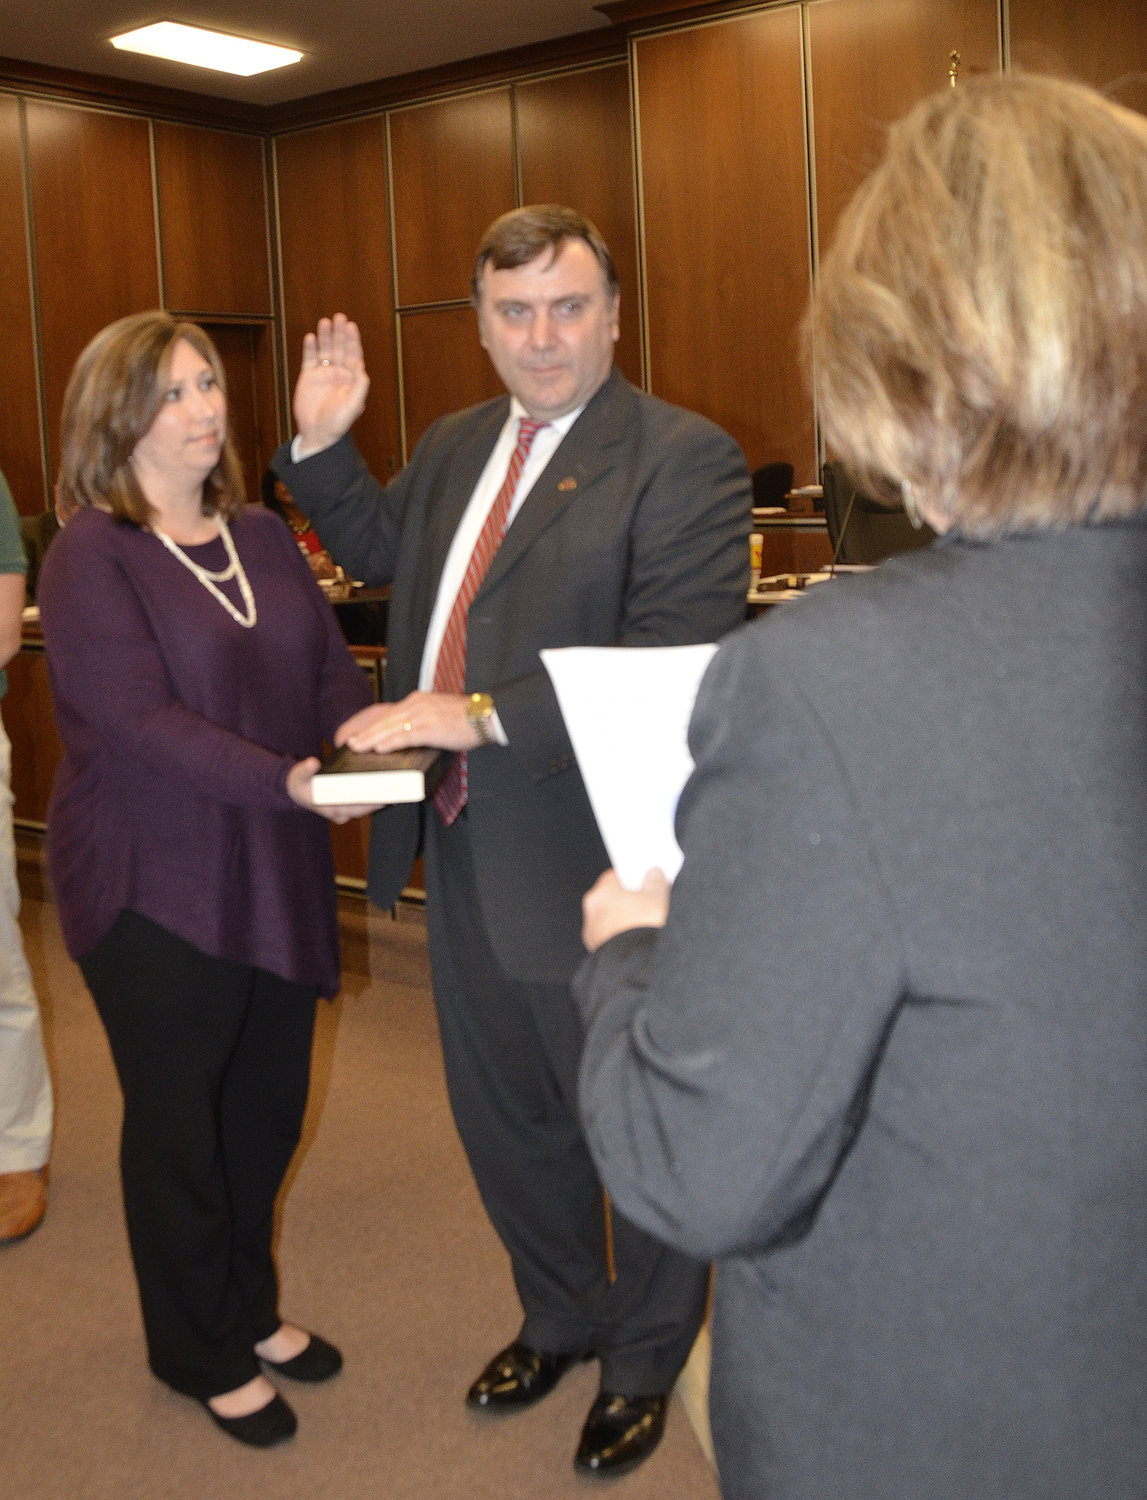 Dunn City Clerk Tammy Williams, right, administers the oath of office to new council member Dr. David Bradham as his wife, Meredith, holds the Bible.